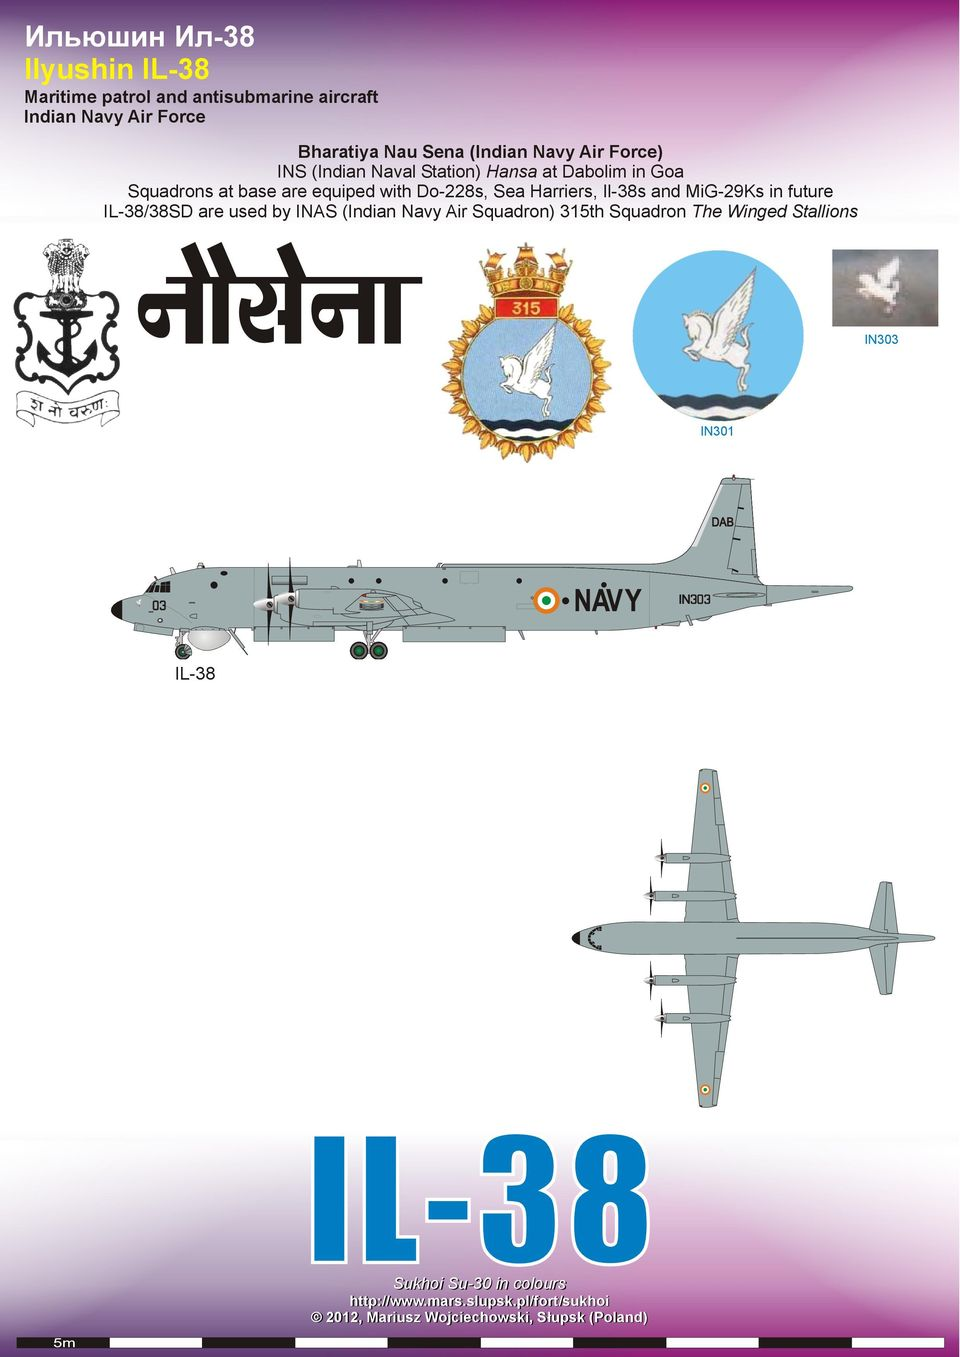 Goa Squadrons at base are equiped with Do-228s, Sea Harriers, Il-38s and MiG-29Ks in future